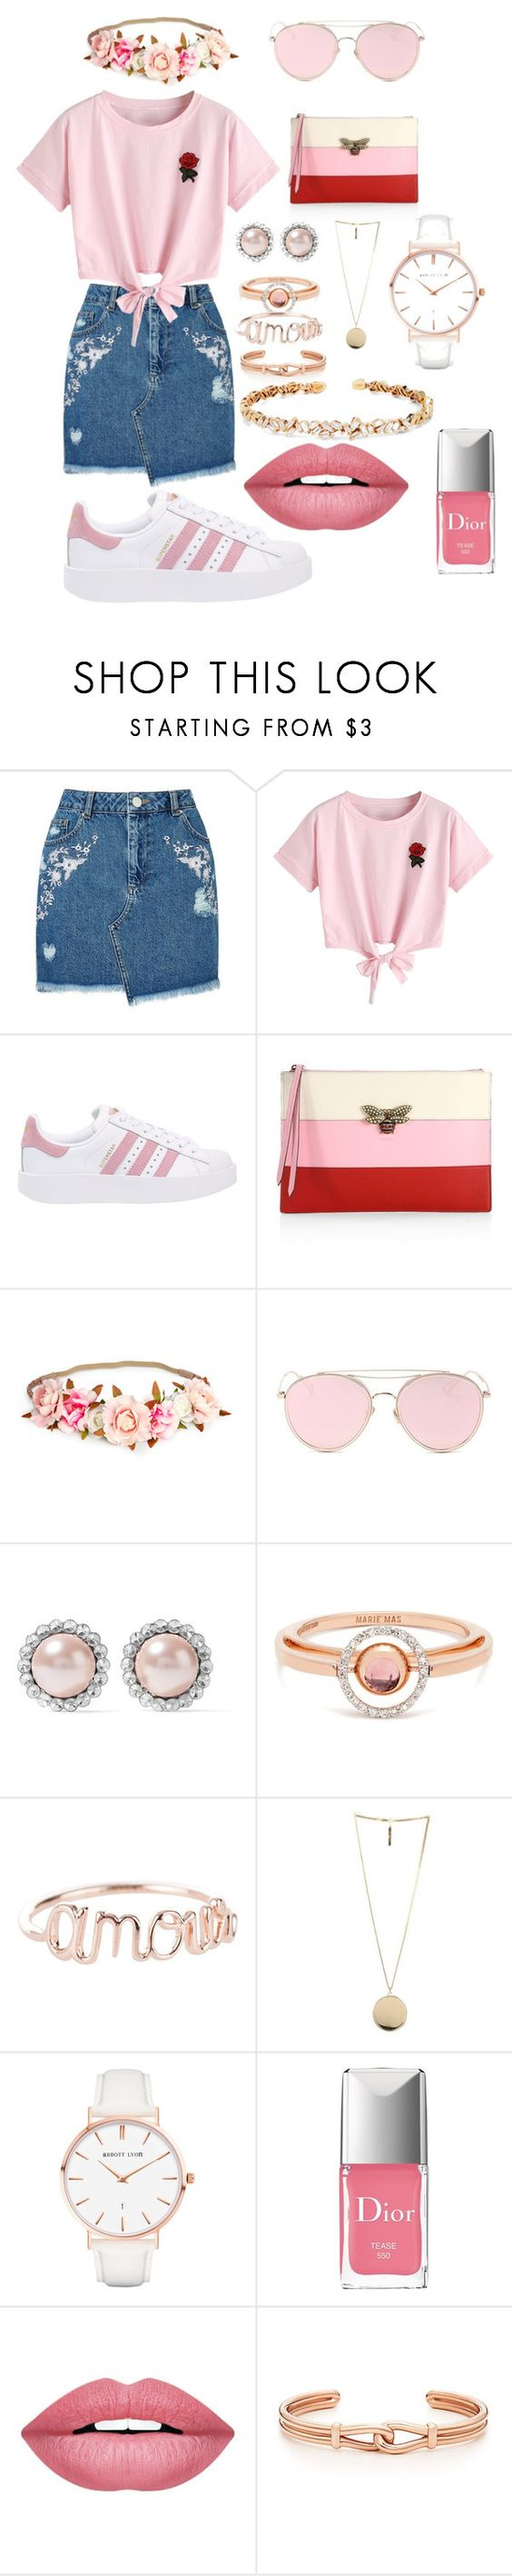 """Untitled #3"" by soninha97 on Polyvore featuring Miss Selfridge, WithChic, adidas Originals, Gucci, LMNT, Miu Miu, Marie Mas, Givenchy, Abbott Lyon and Christian Dior"